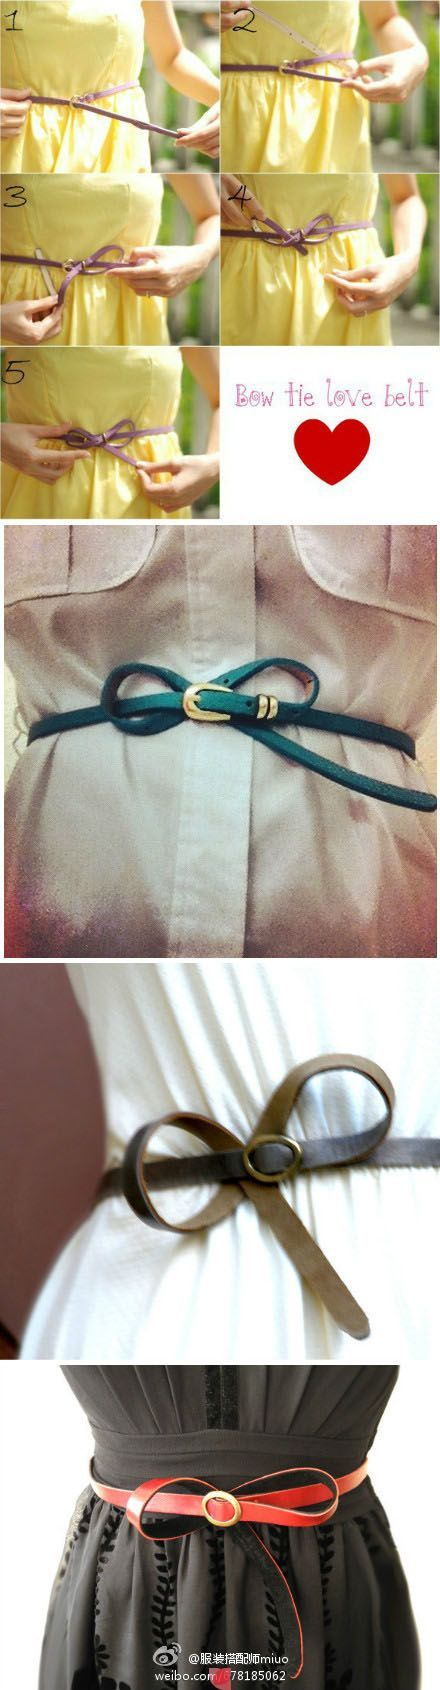 Will be wearing my belts like this for now on :)